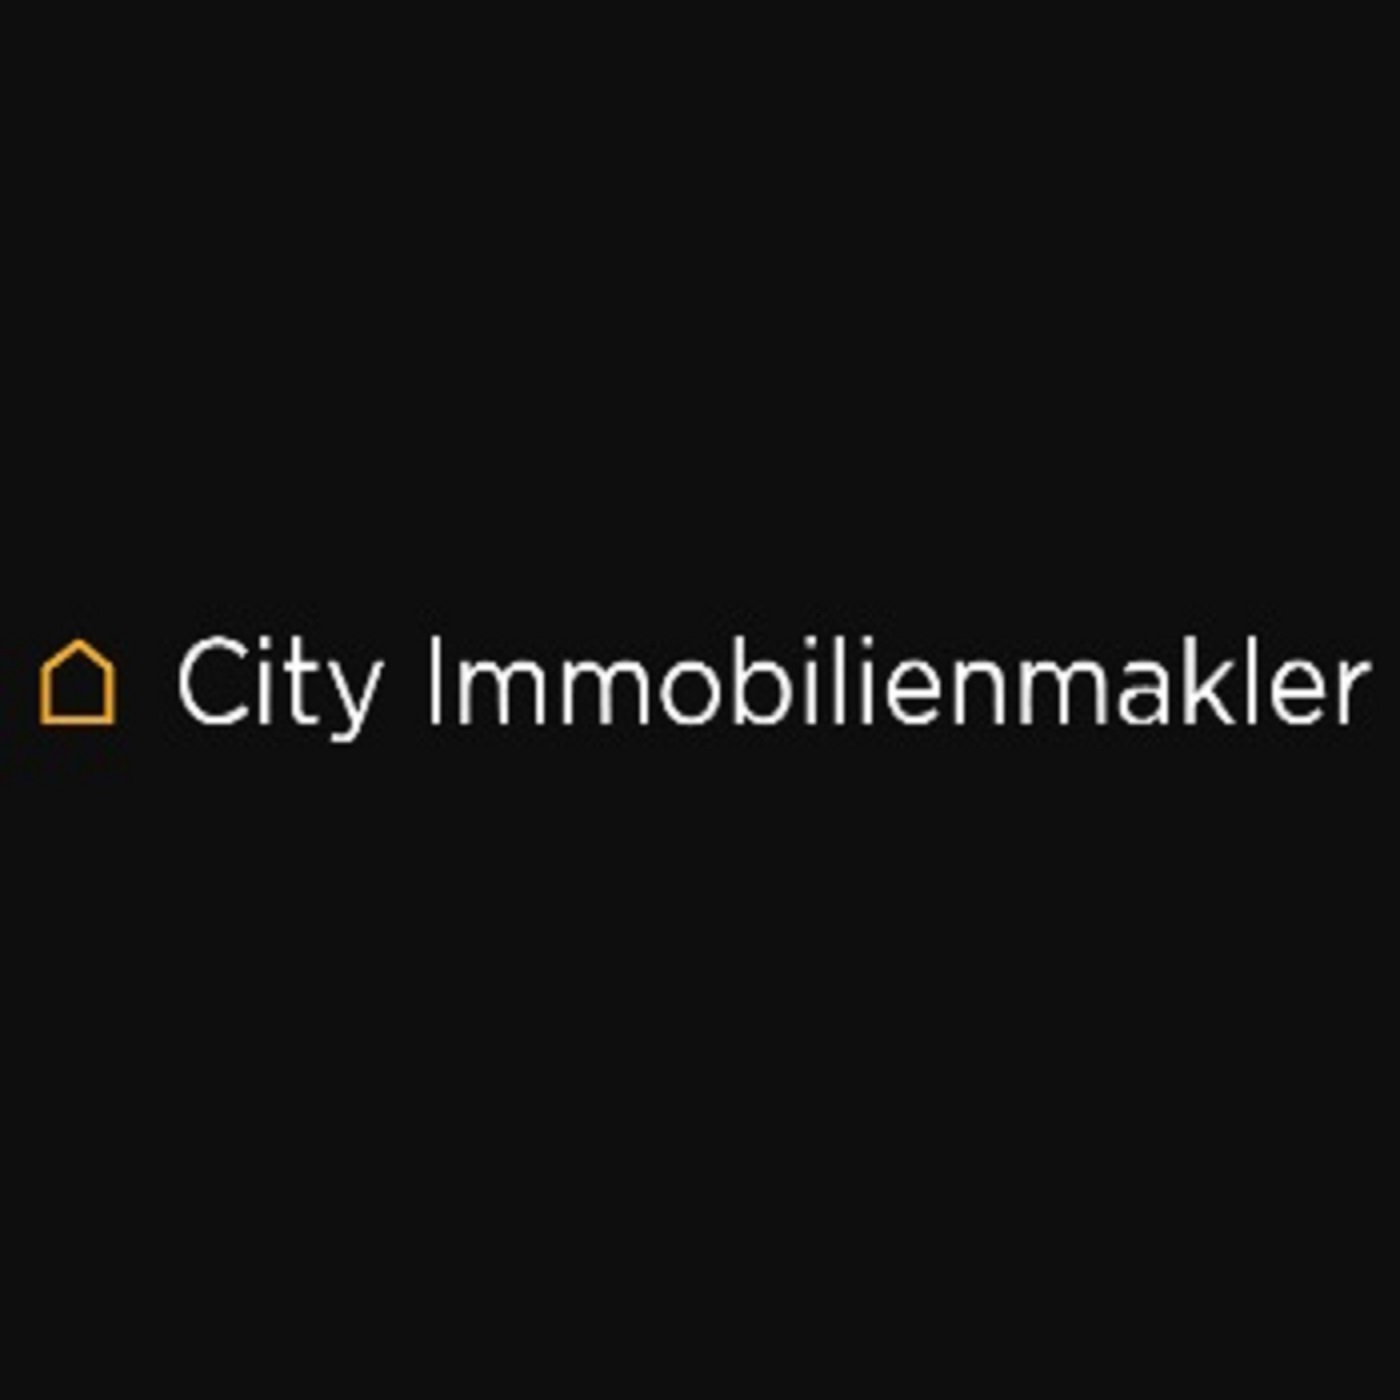 City Immobilienmakler GmbH